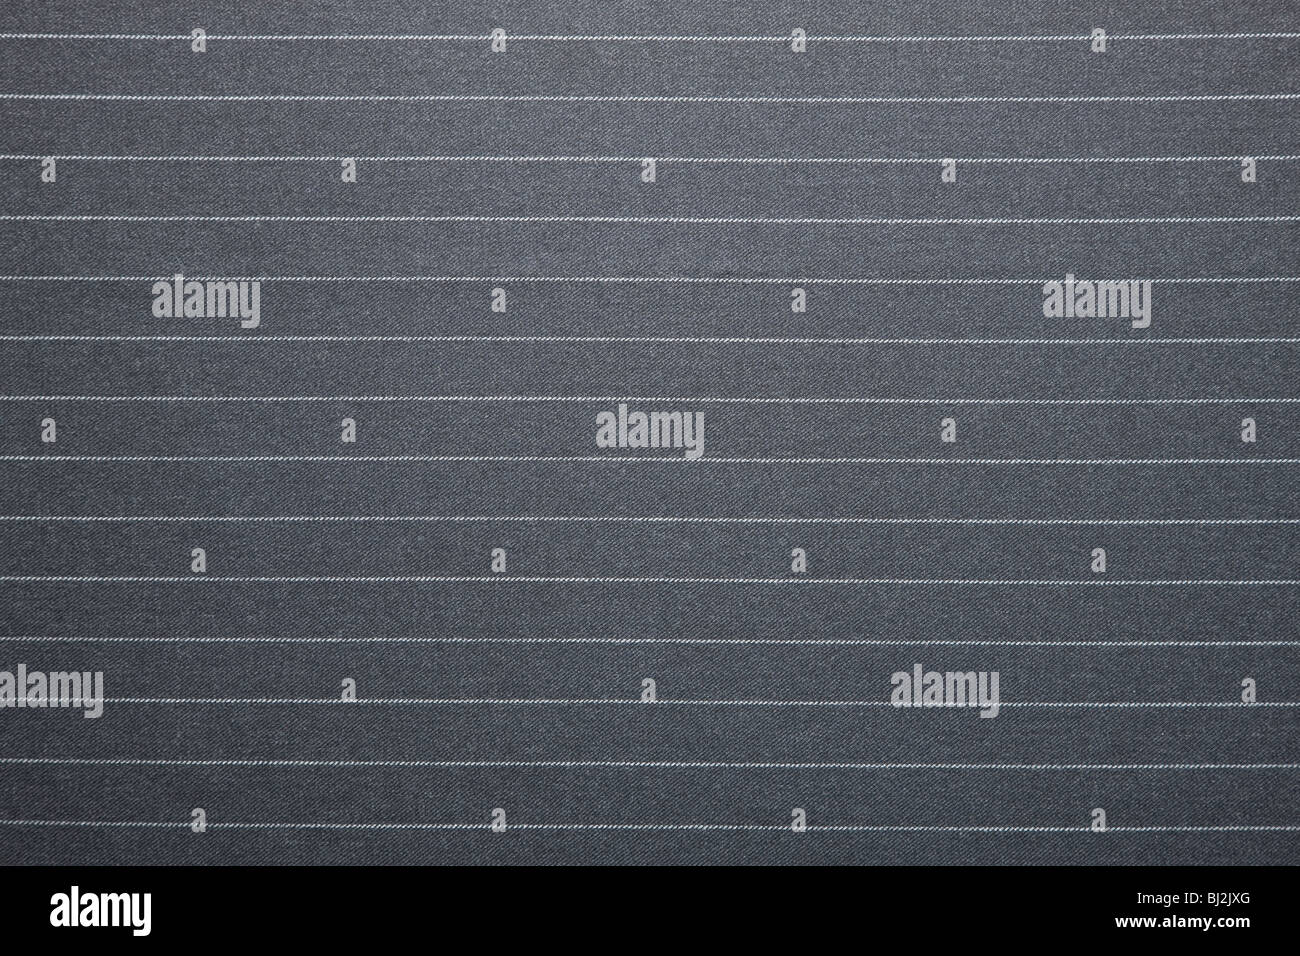 High quality pin stripe suit background texture - Stock Image